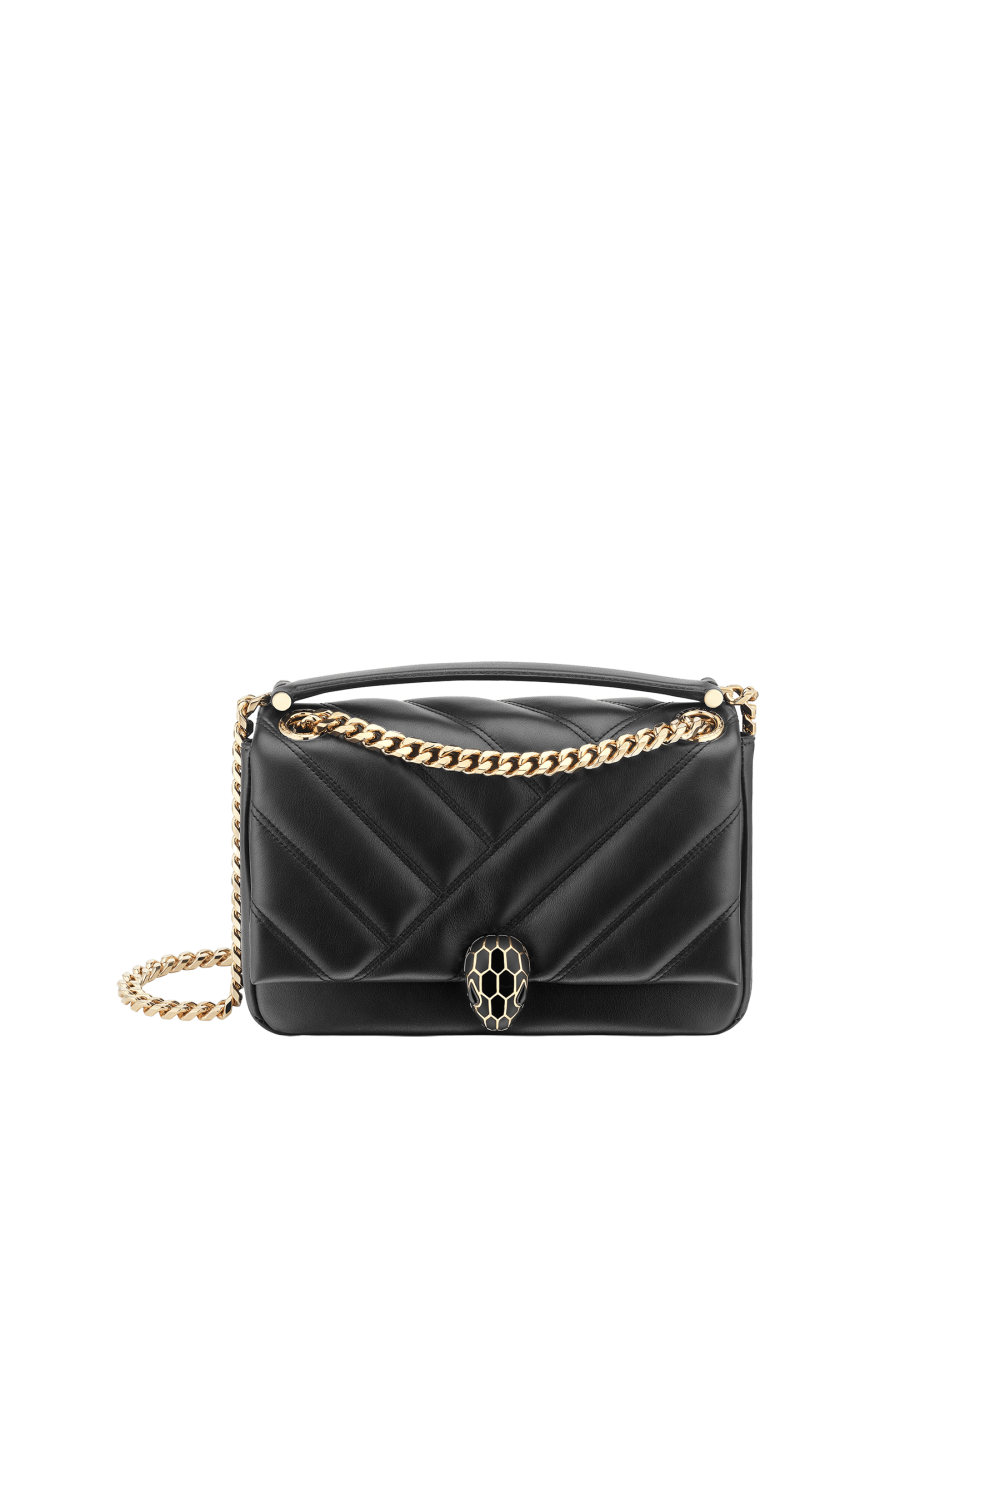 Bulgari Serpenti Cabochon Shoulder Bag Black